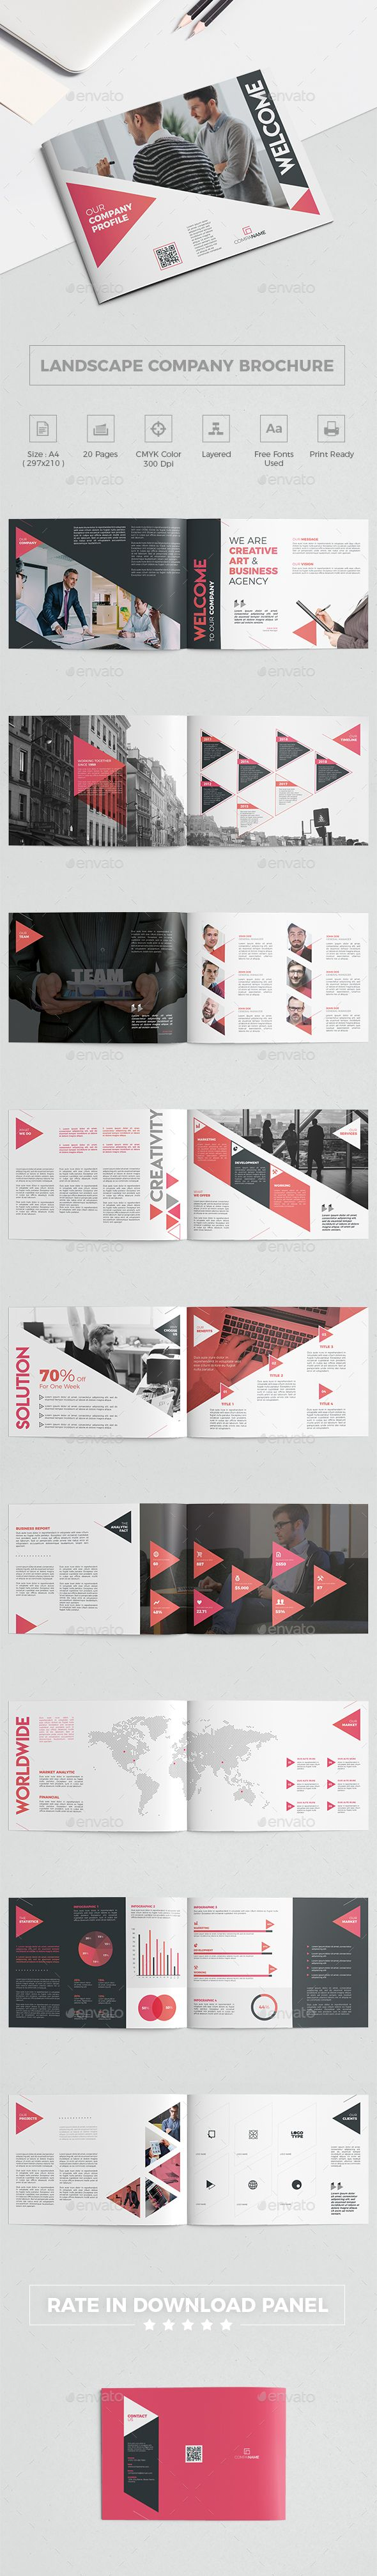 Landscape Company Brochure   #abstract, #agency, #brochure template, #business, #company, #company profile, #creative, #diagonal, #financial, #gradient, #infographic, #landscape, #landscape brochure, #landscape company brochure, #line, #map, #market, #marketing, #modern, #professional, #red, #report, #service, #solution, #statistics, #team, #template, #timeline, #unique, #welcome